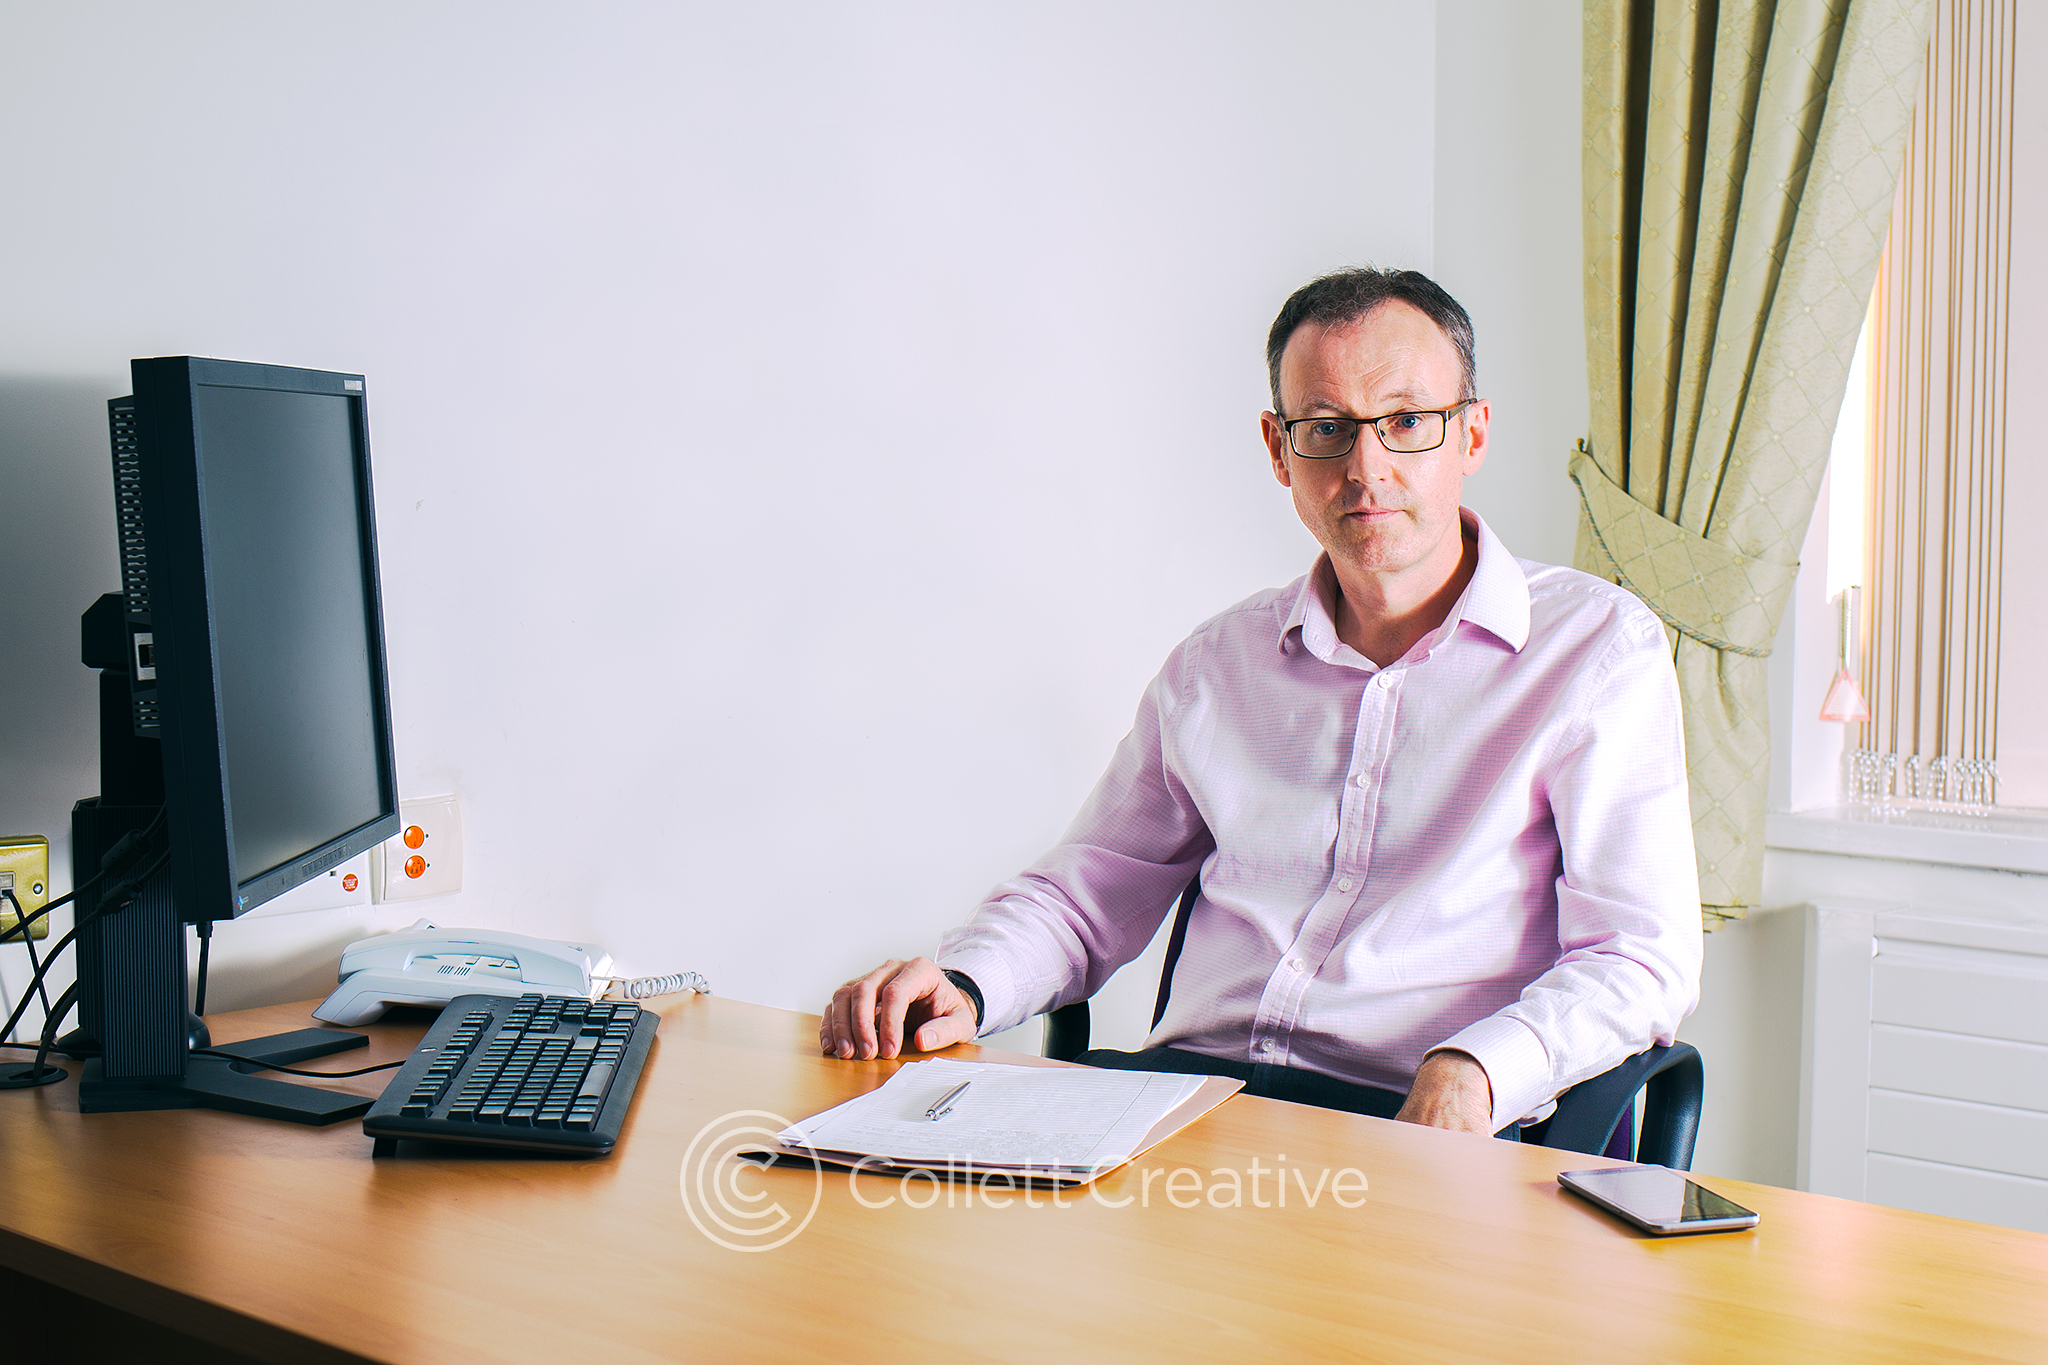 Photograph of Dr Hiskey taken at The Oaks Hospital, Colchester for his new website.